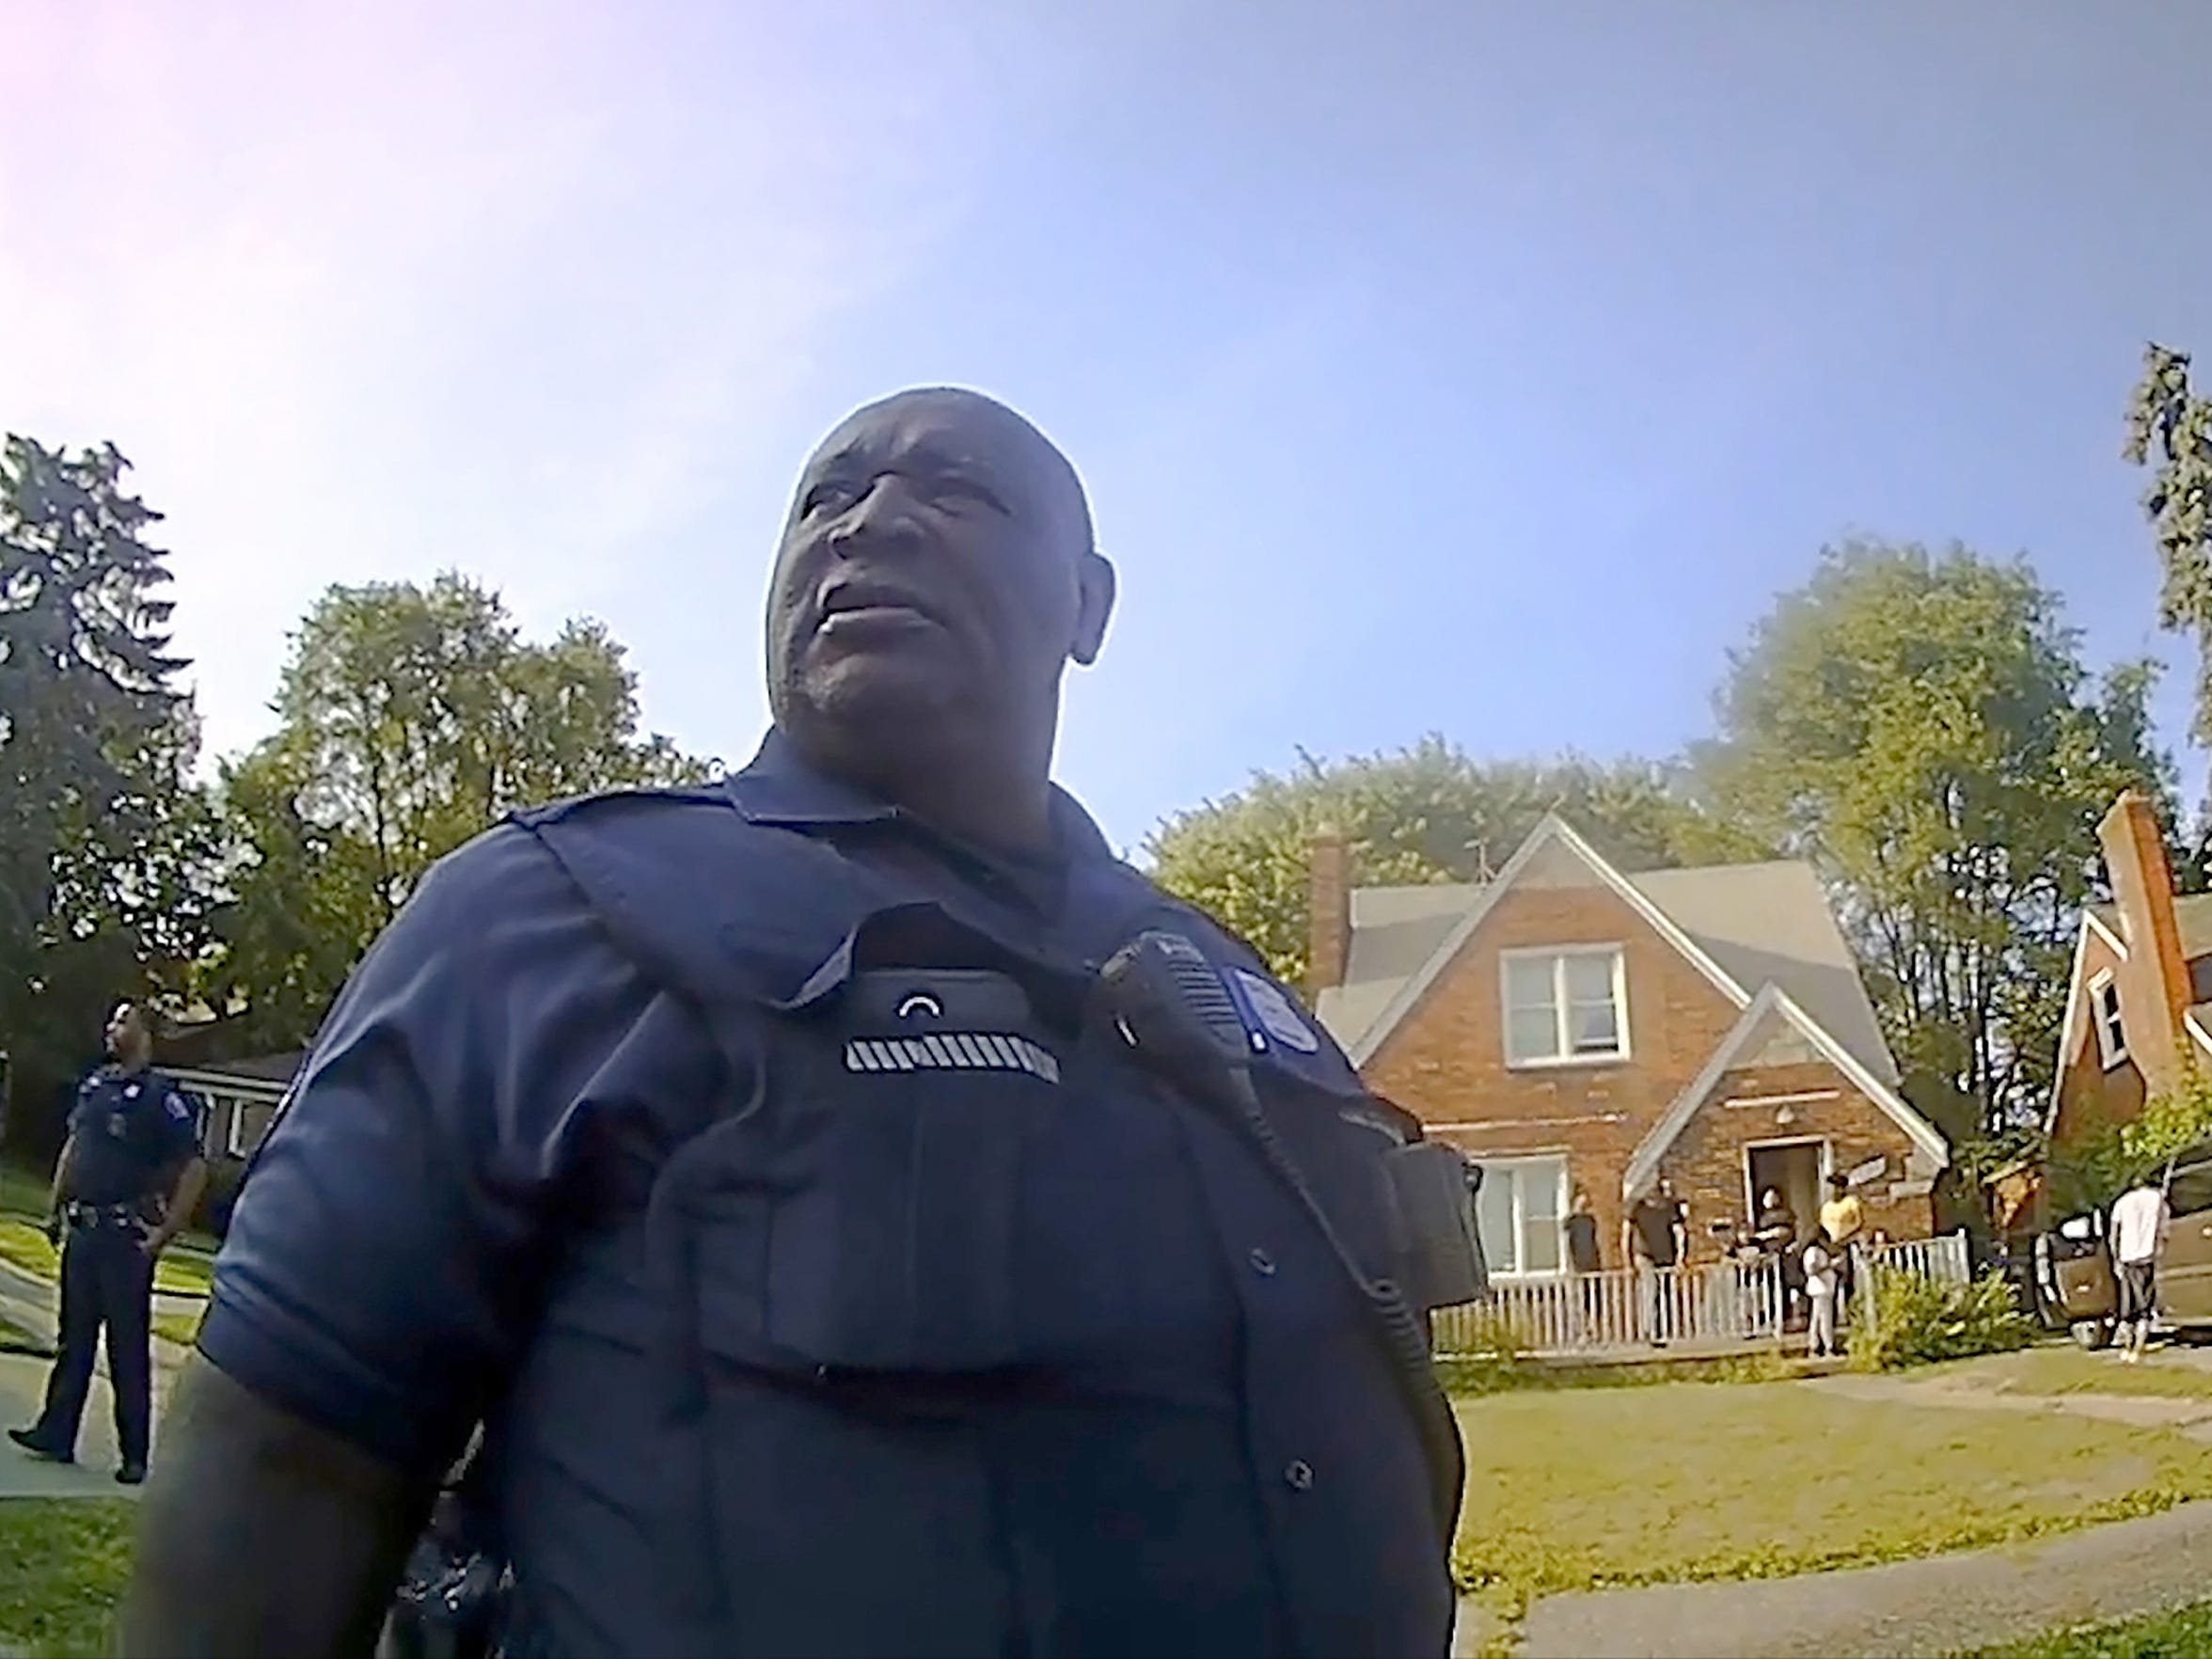 Detroit Police Officer Aubrey Wade was reassigned to non-patrol duty on April 11, 2018, after his supervisors reviewed video of him making insensitive remarks at the scene of a fatal ATV crash involving Damon Grimes.